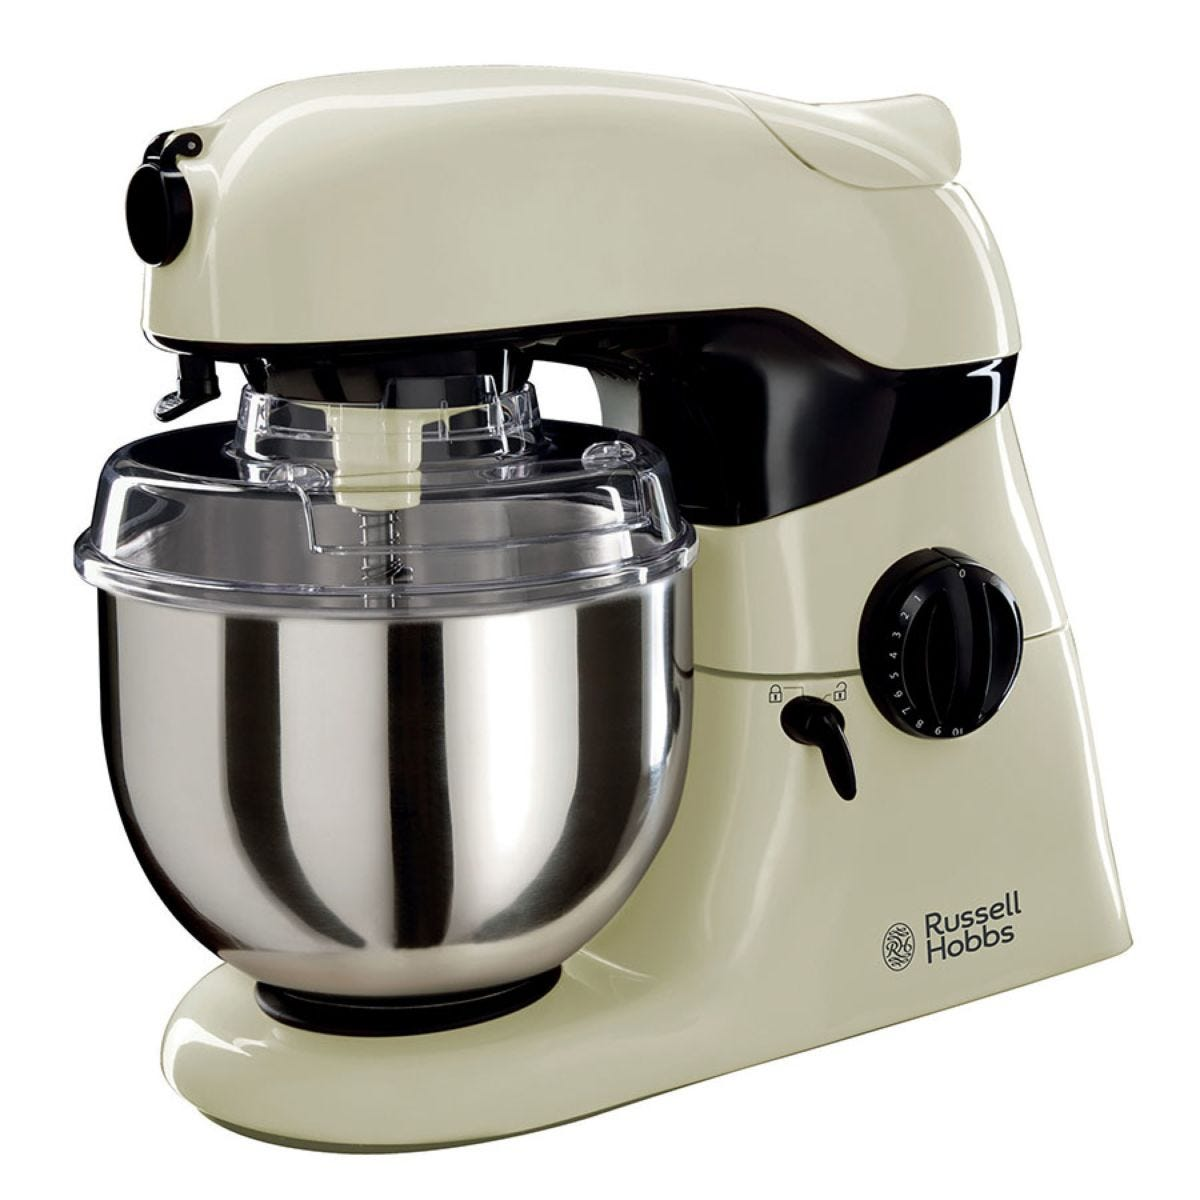 Russell Hobbs Creations Kitchen Machine Blender and Mixer - Cream